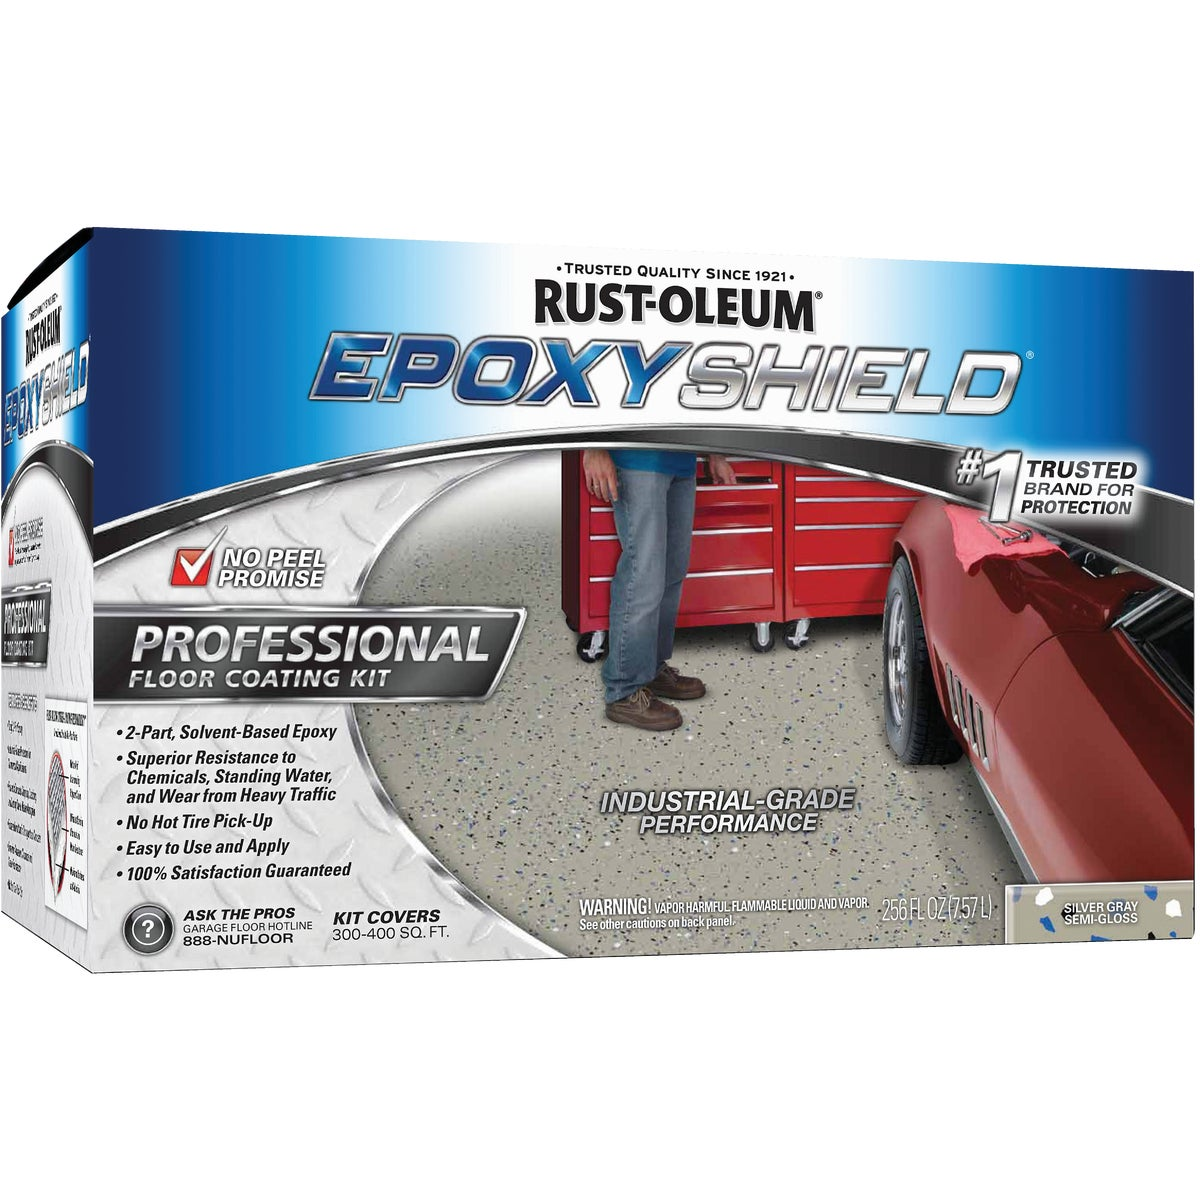 SIL/GRAY IND EPOXYSHIELD - 203373 by Rustoleum